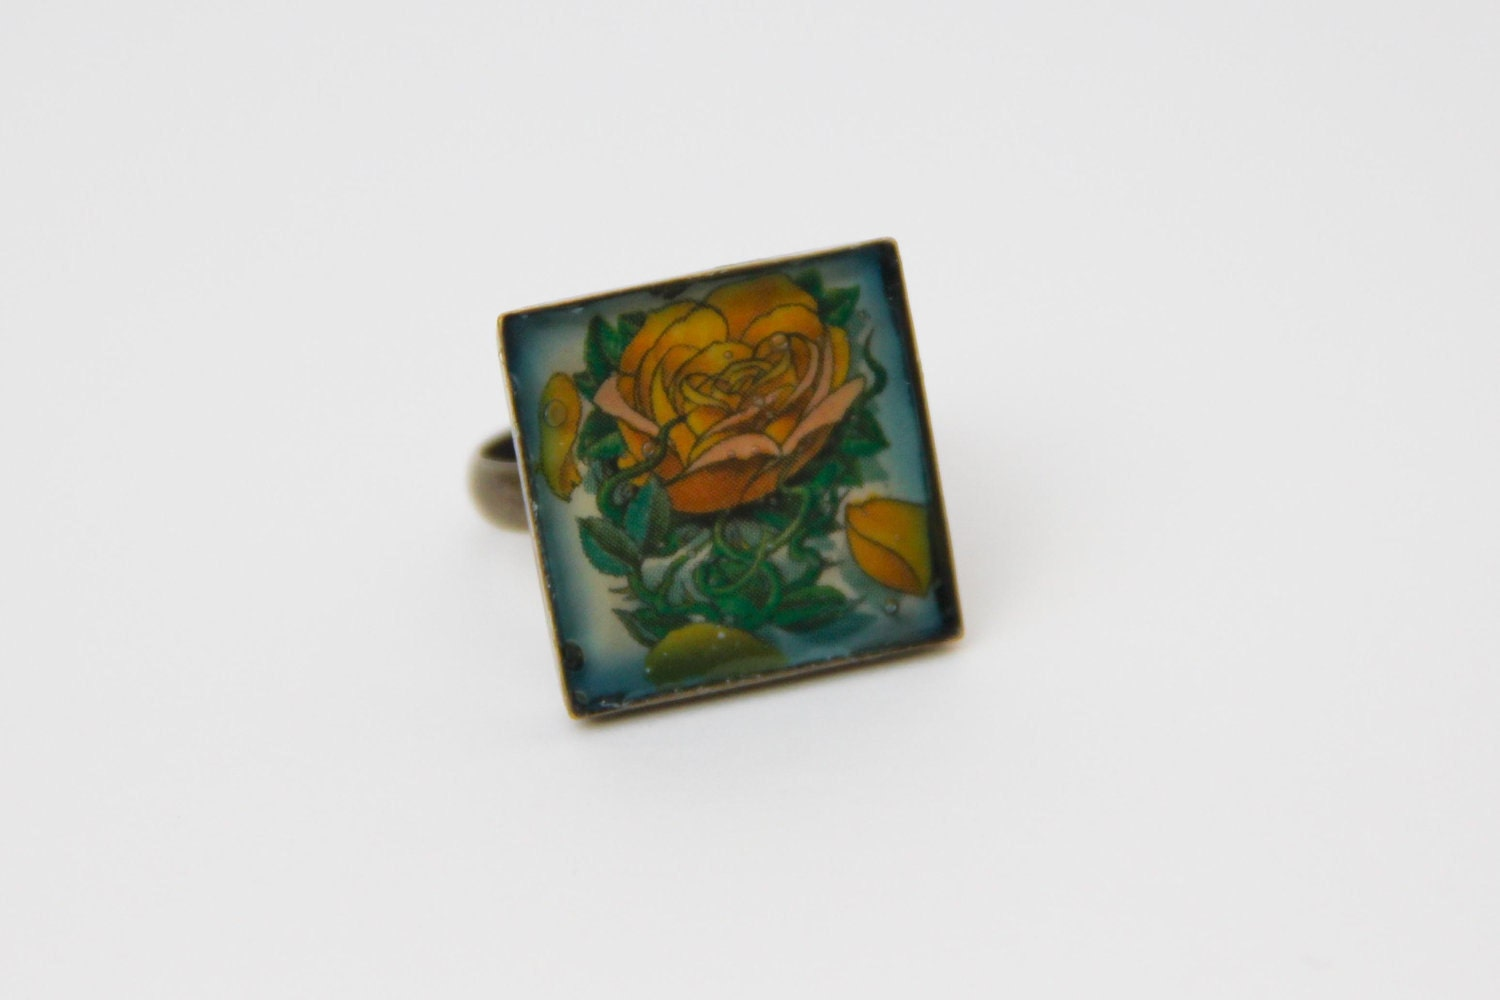 This is a tattooed ring He has a nice old school rose image on it the ring